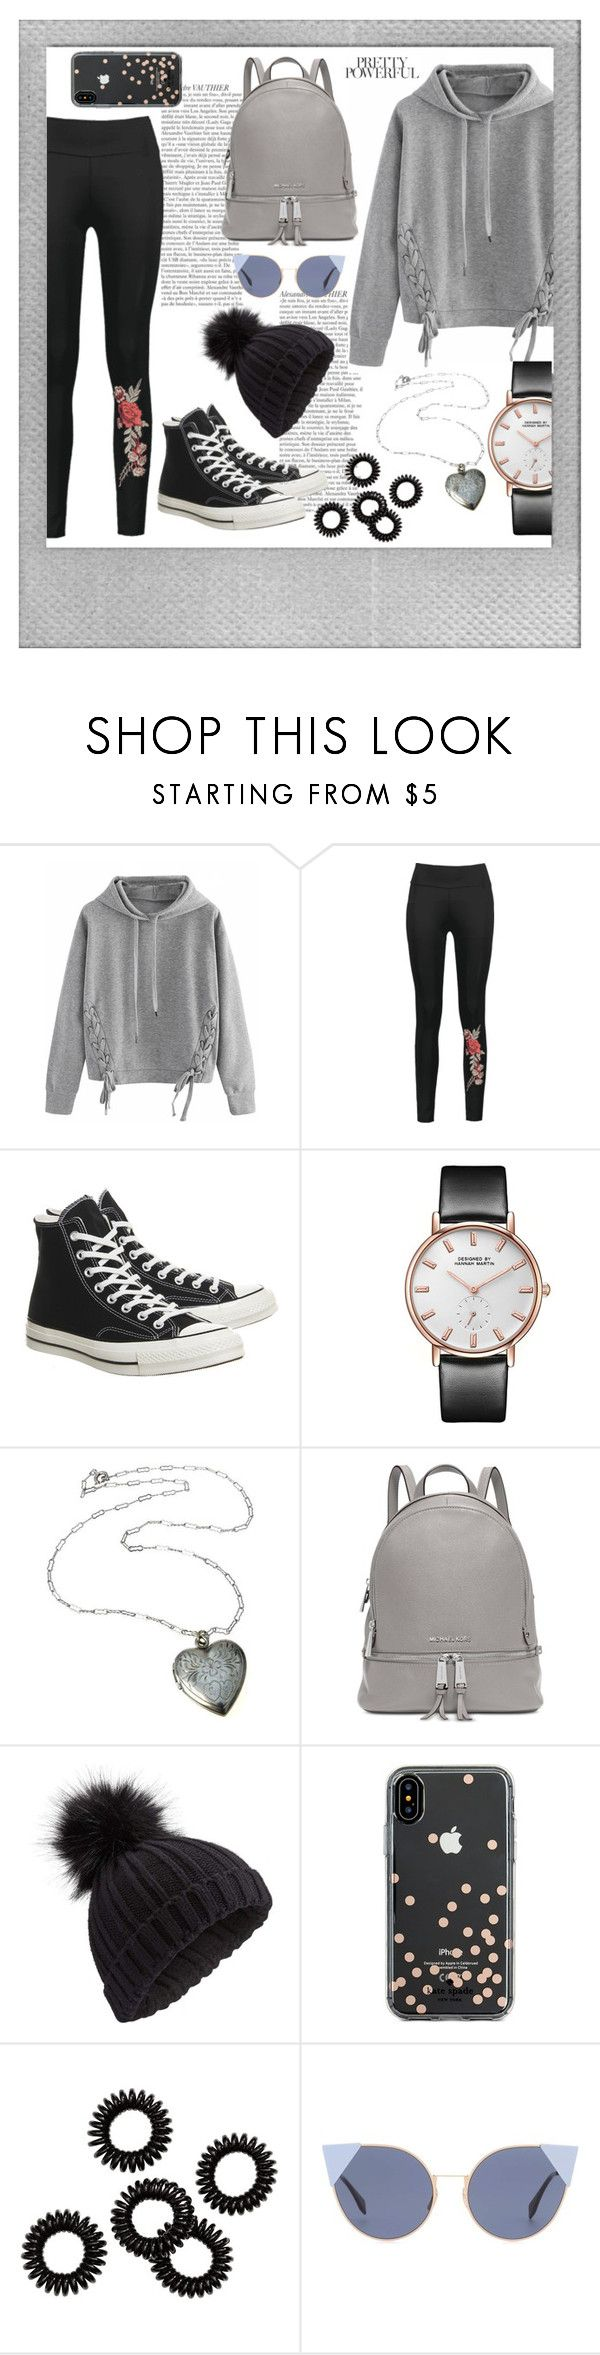 """""""058"""" by holography ❤ liked on Polyvore featuring Polaroid, WithChic, Converse, Michael Kors, Miss Selfridge, Kate Spade and Fendi"""